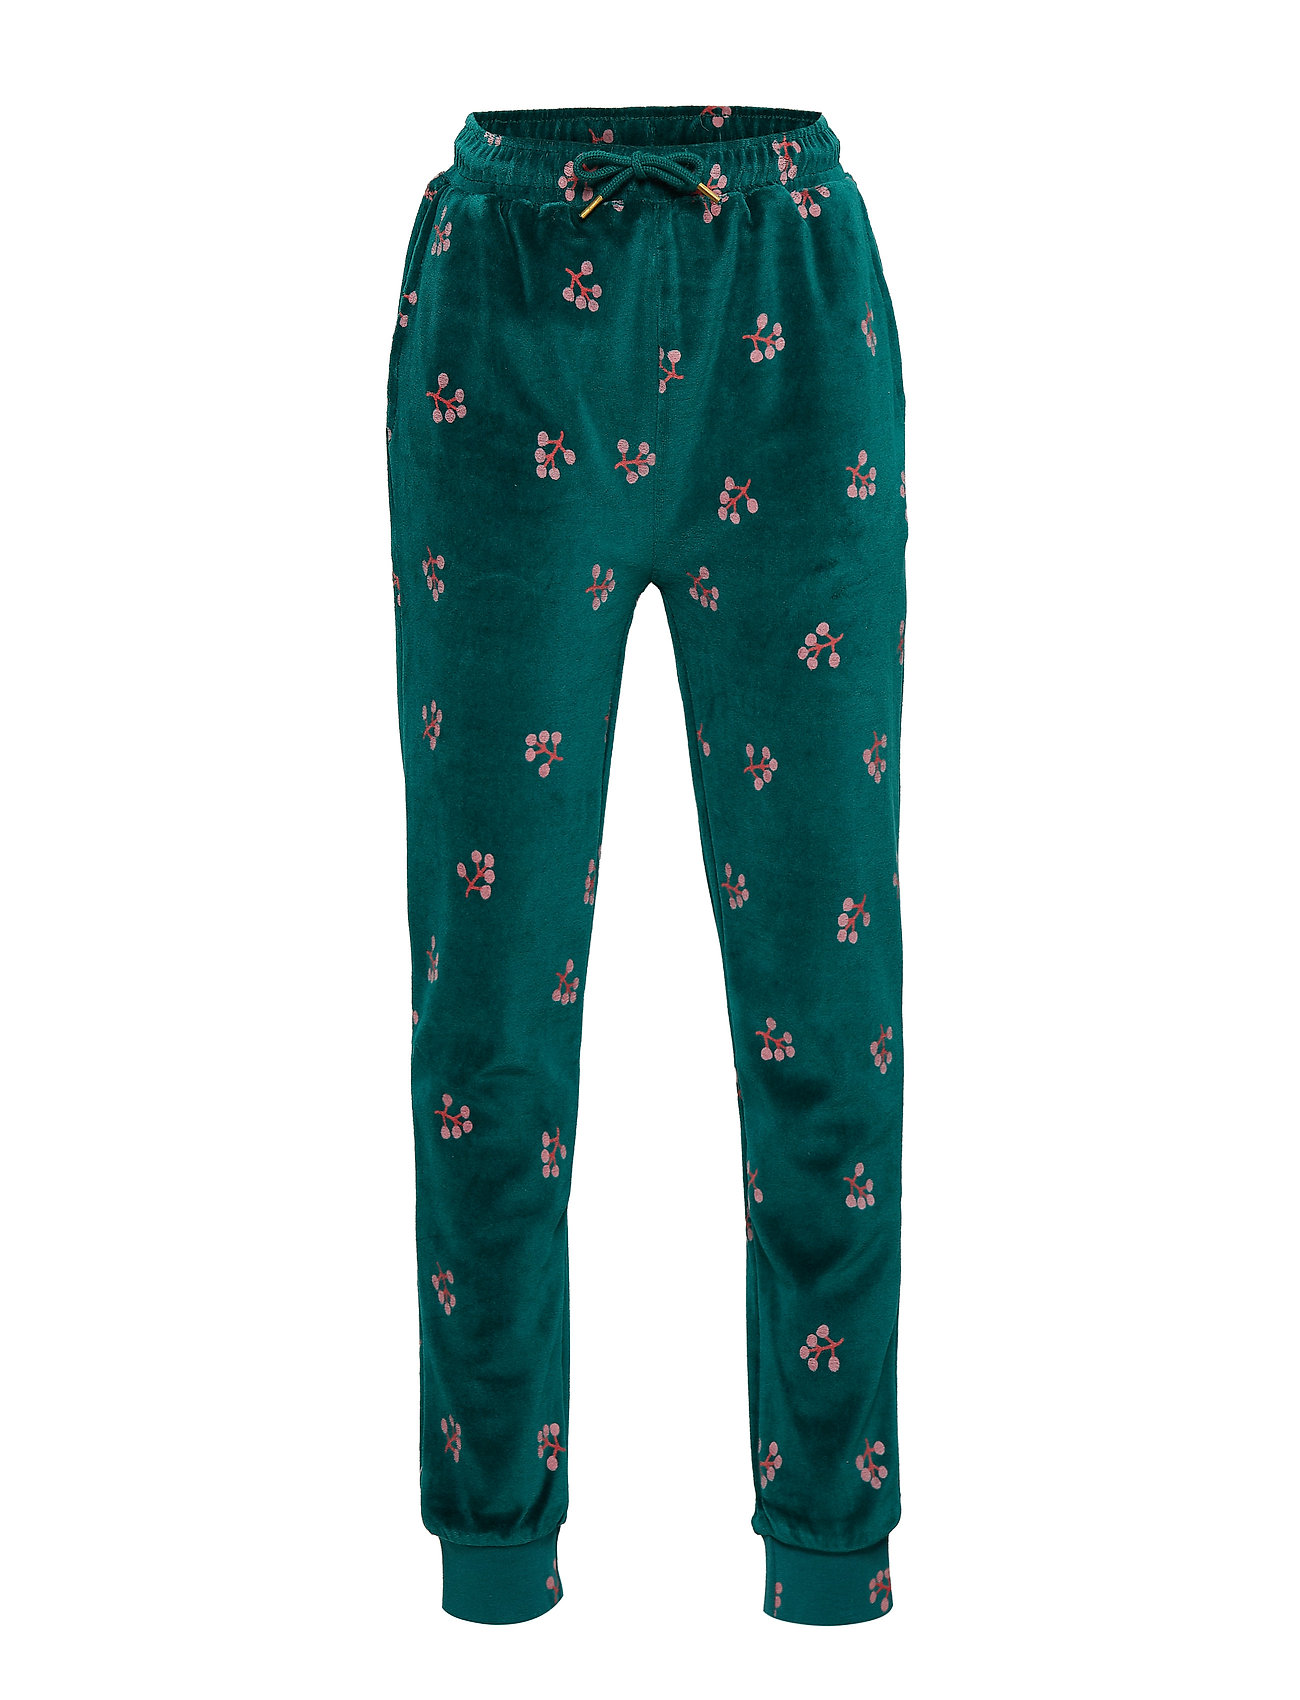 Soft Gallery Charline Pants - DEEP TEAL, AOP WINTERBERRY